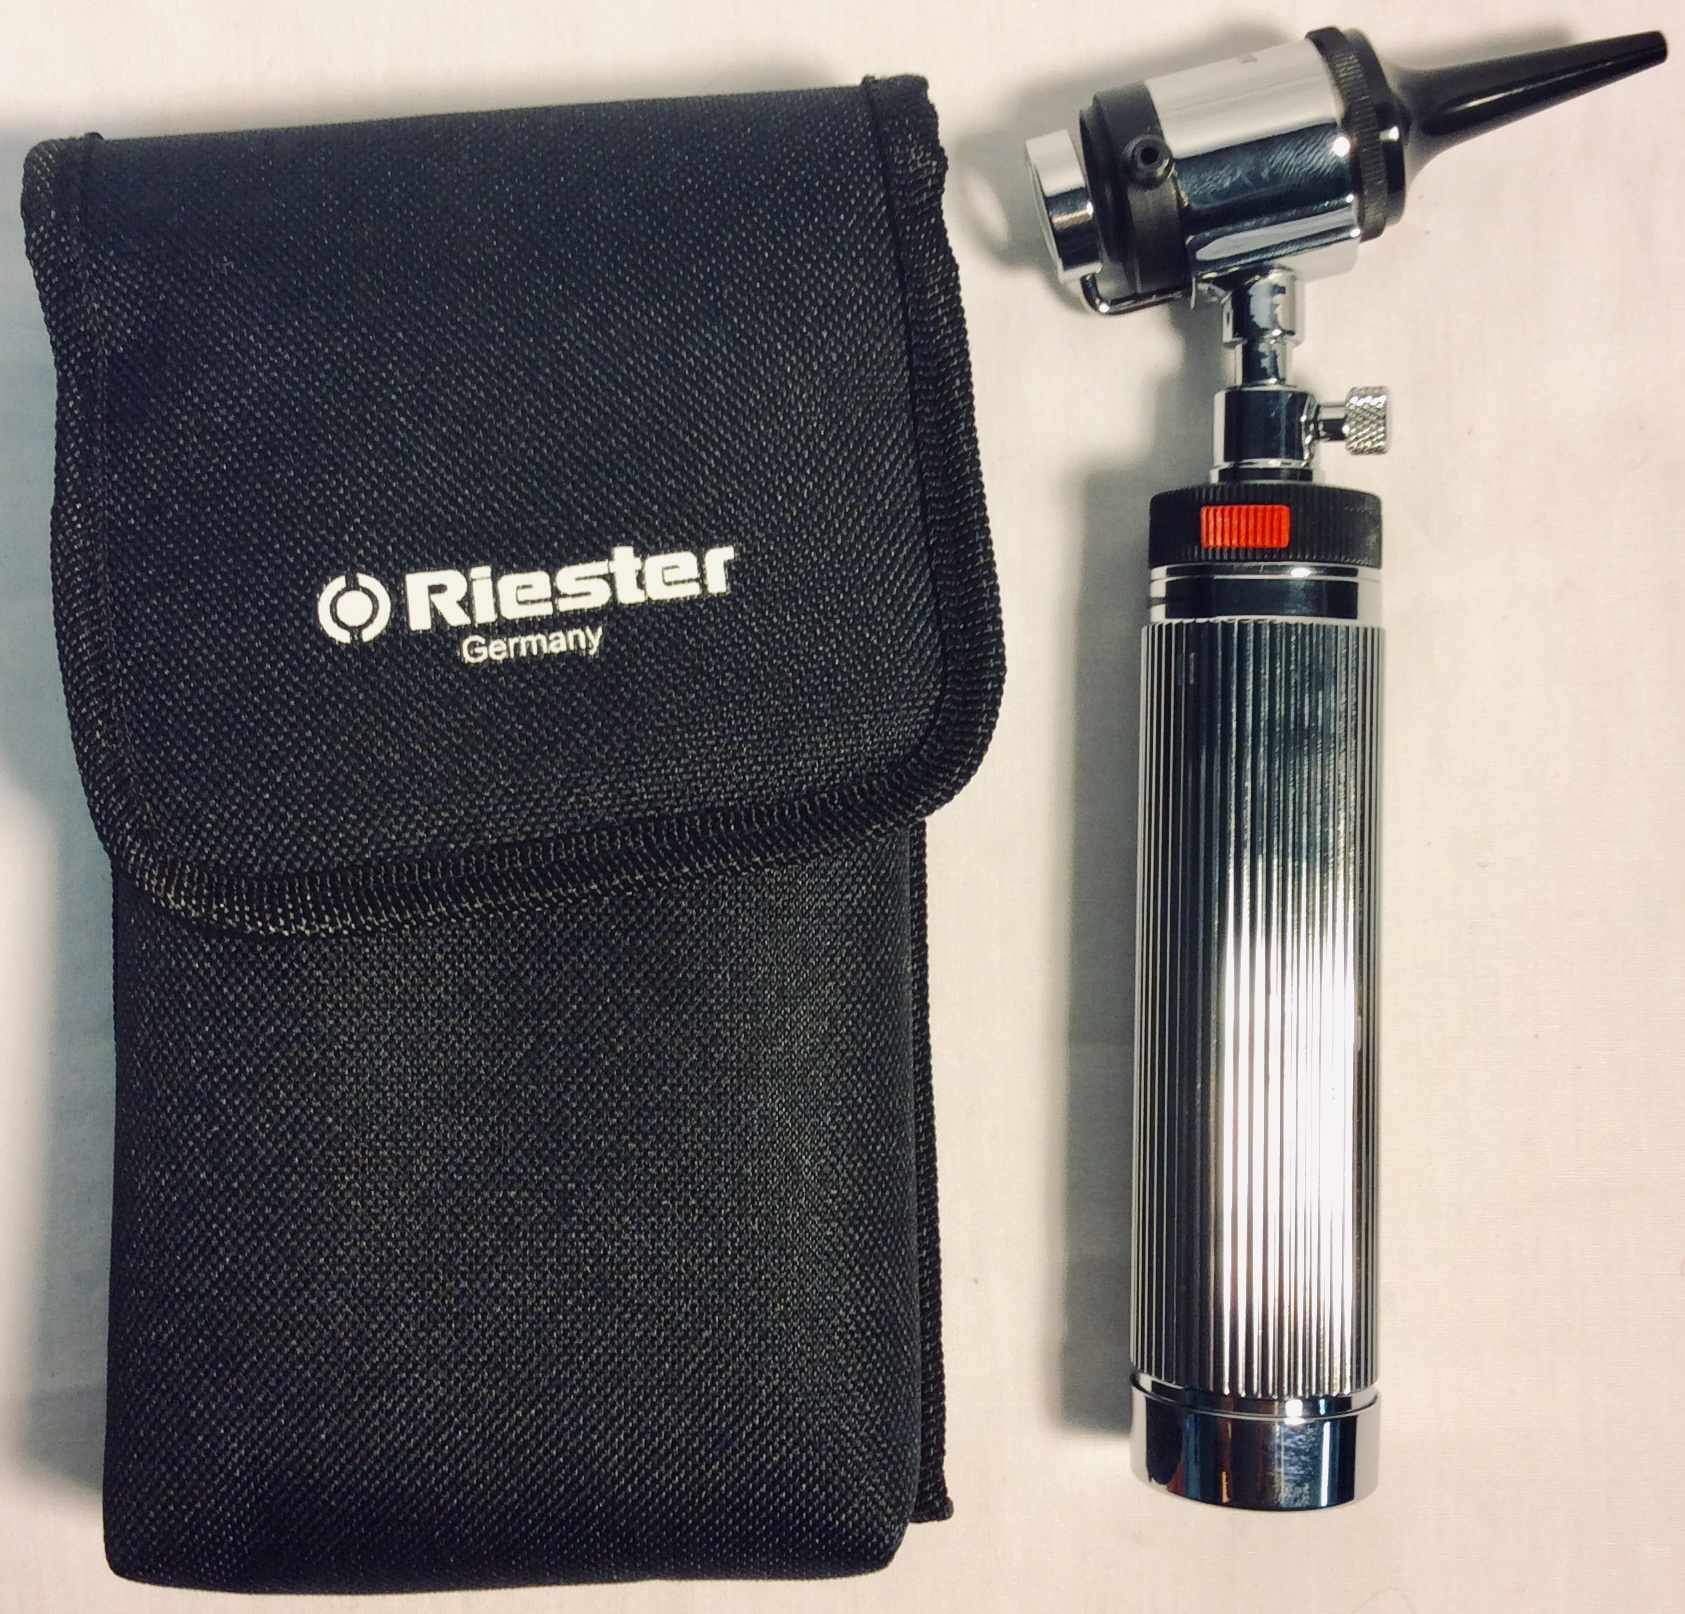 Riester otoscope (ear scope)